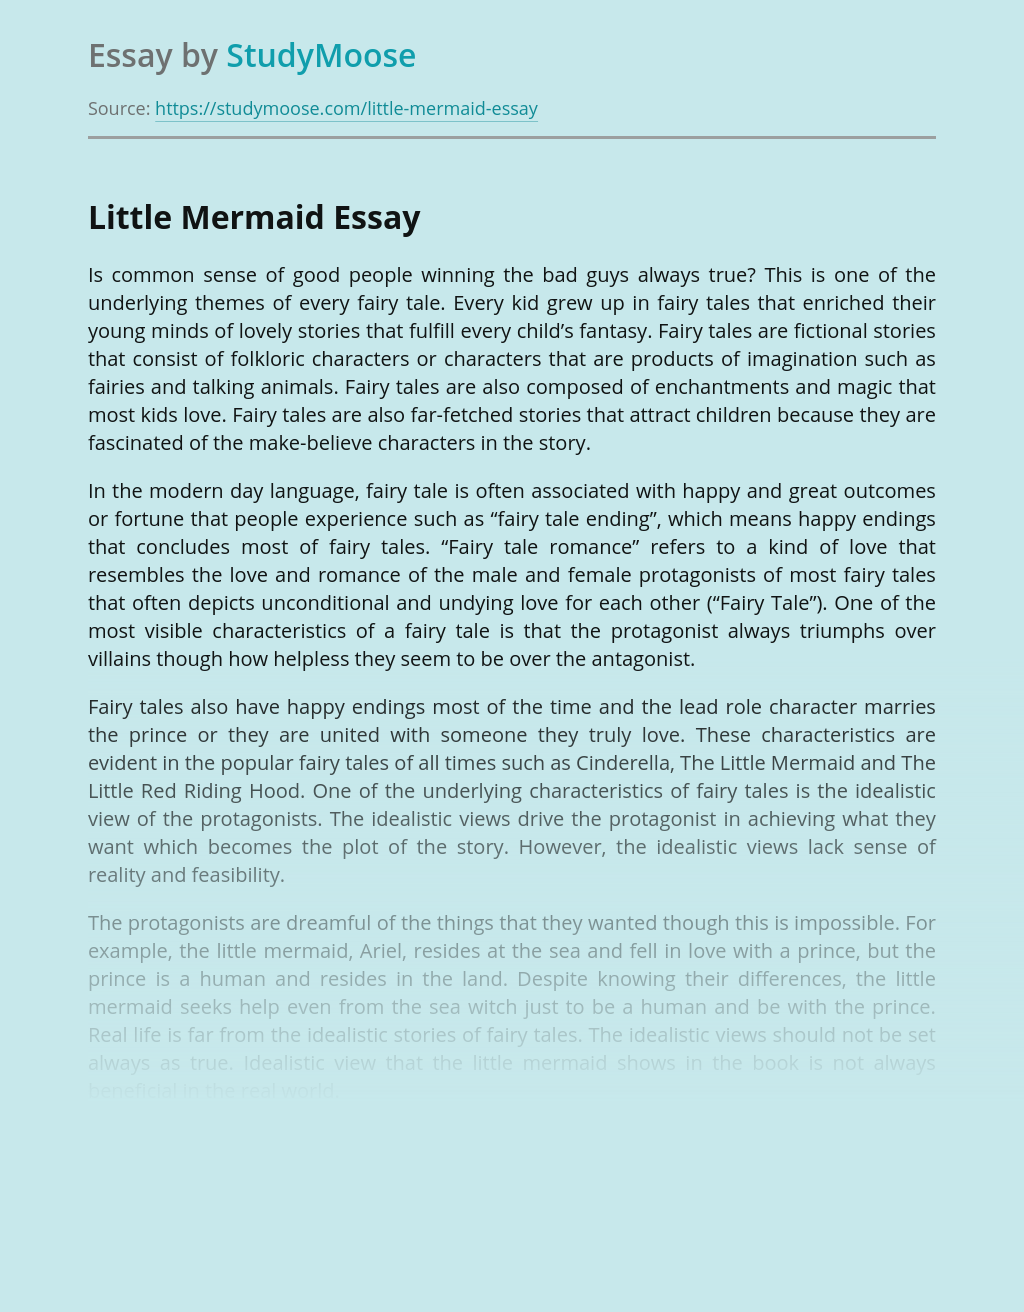 Disney's and Andersen's Fairy Tales About Little Mermaid